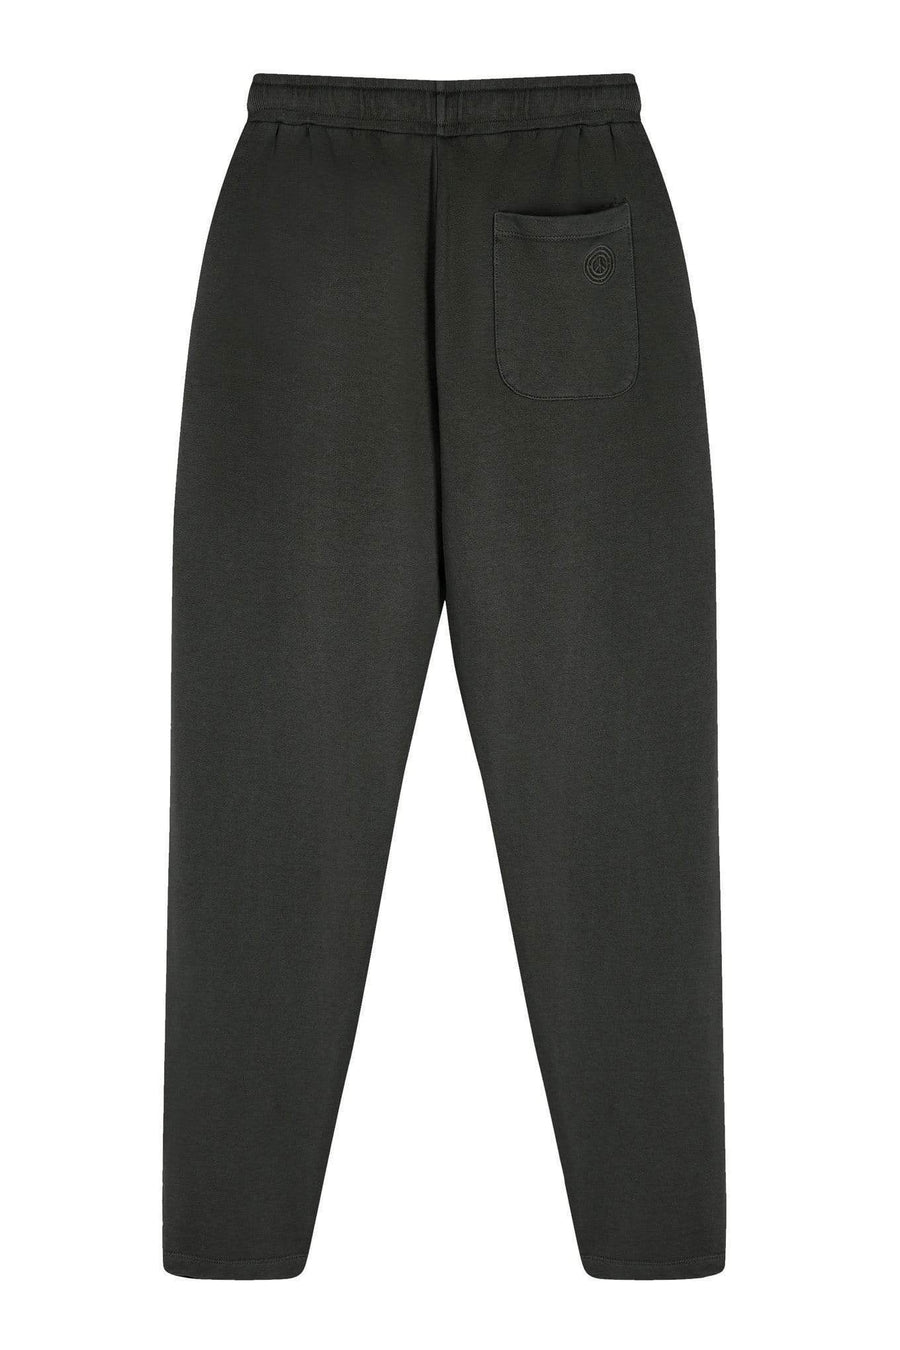 KOMODO Trousers OLYMPIA Mens - GOTS Organic Cotton Jogger Black sustainable fashion ethical fashion